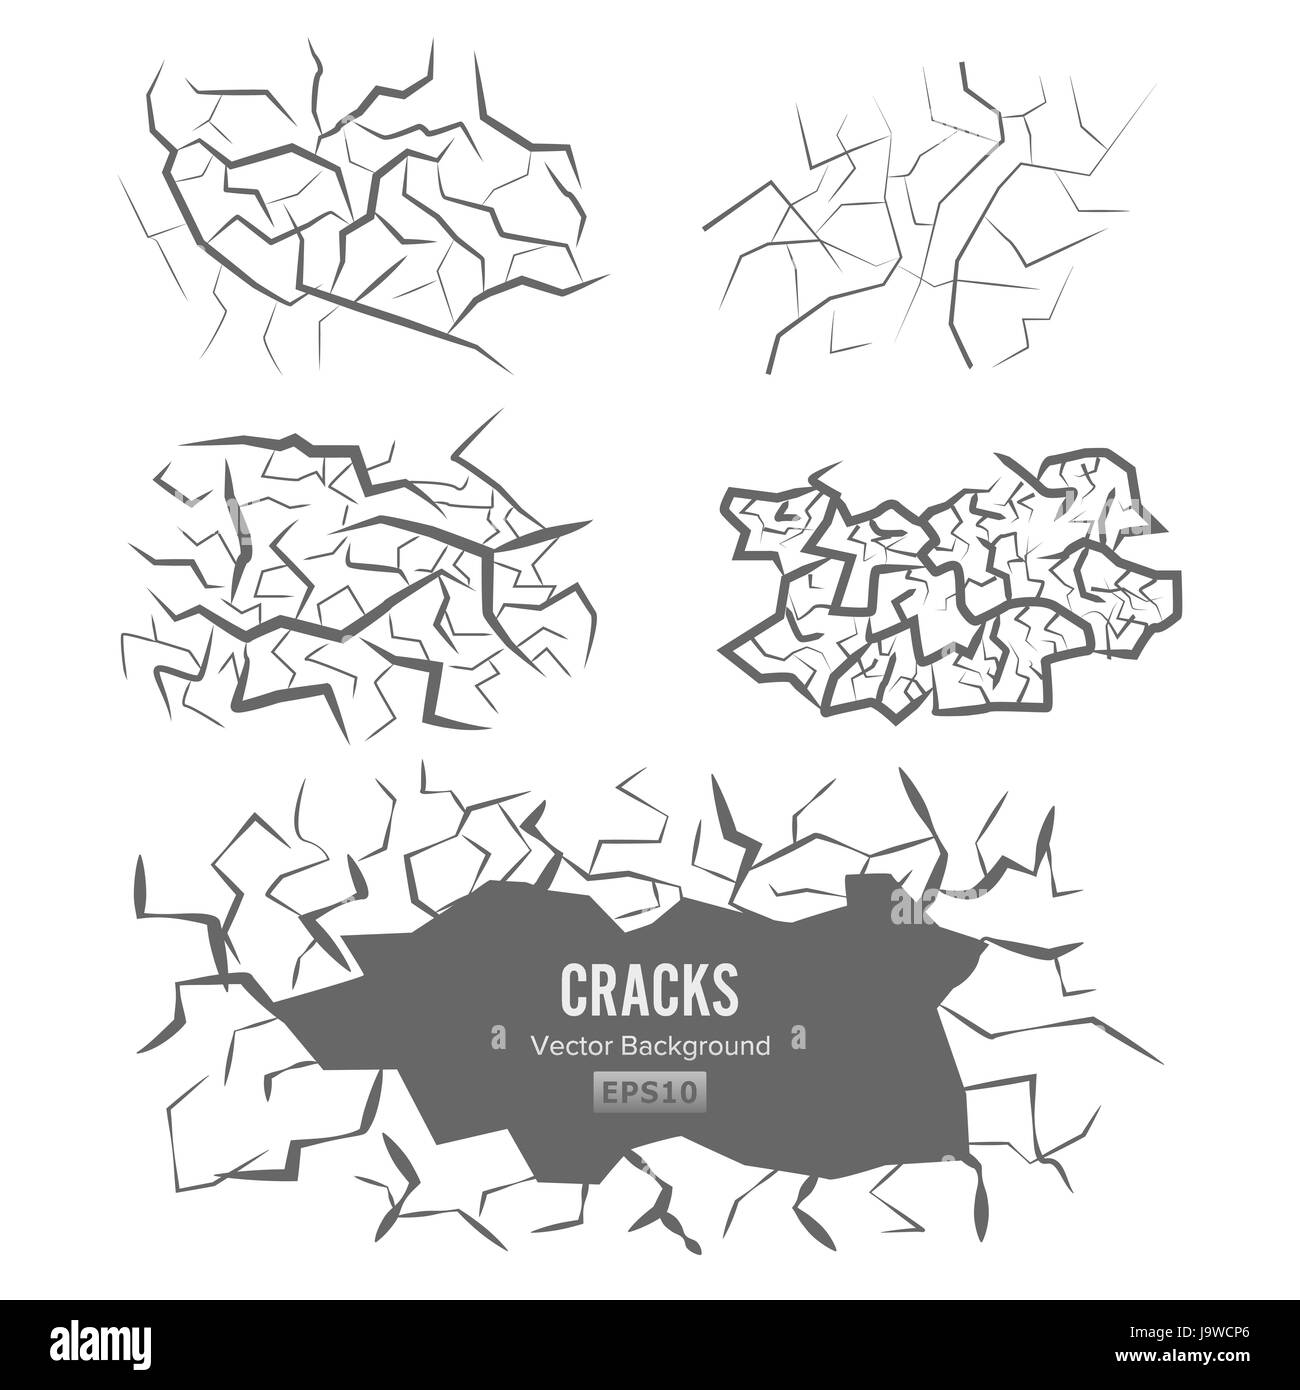 Cracks In The Ground Vector. 3D Illustration Isolated on white - Stock Image